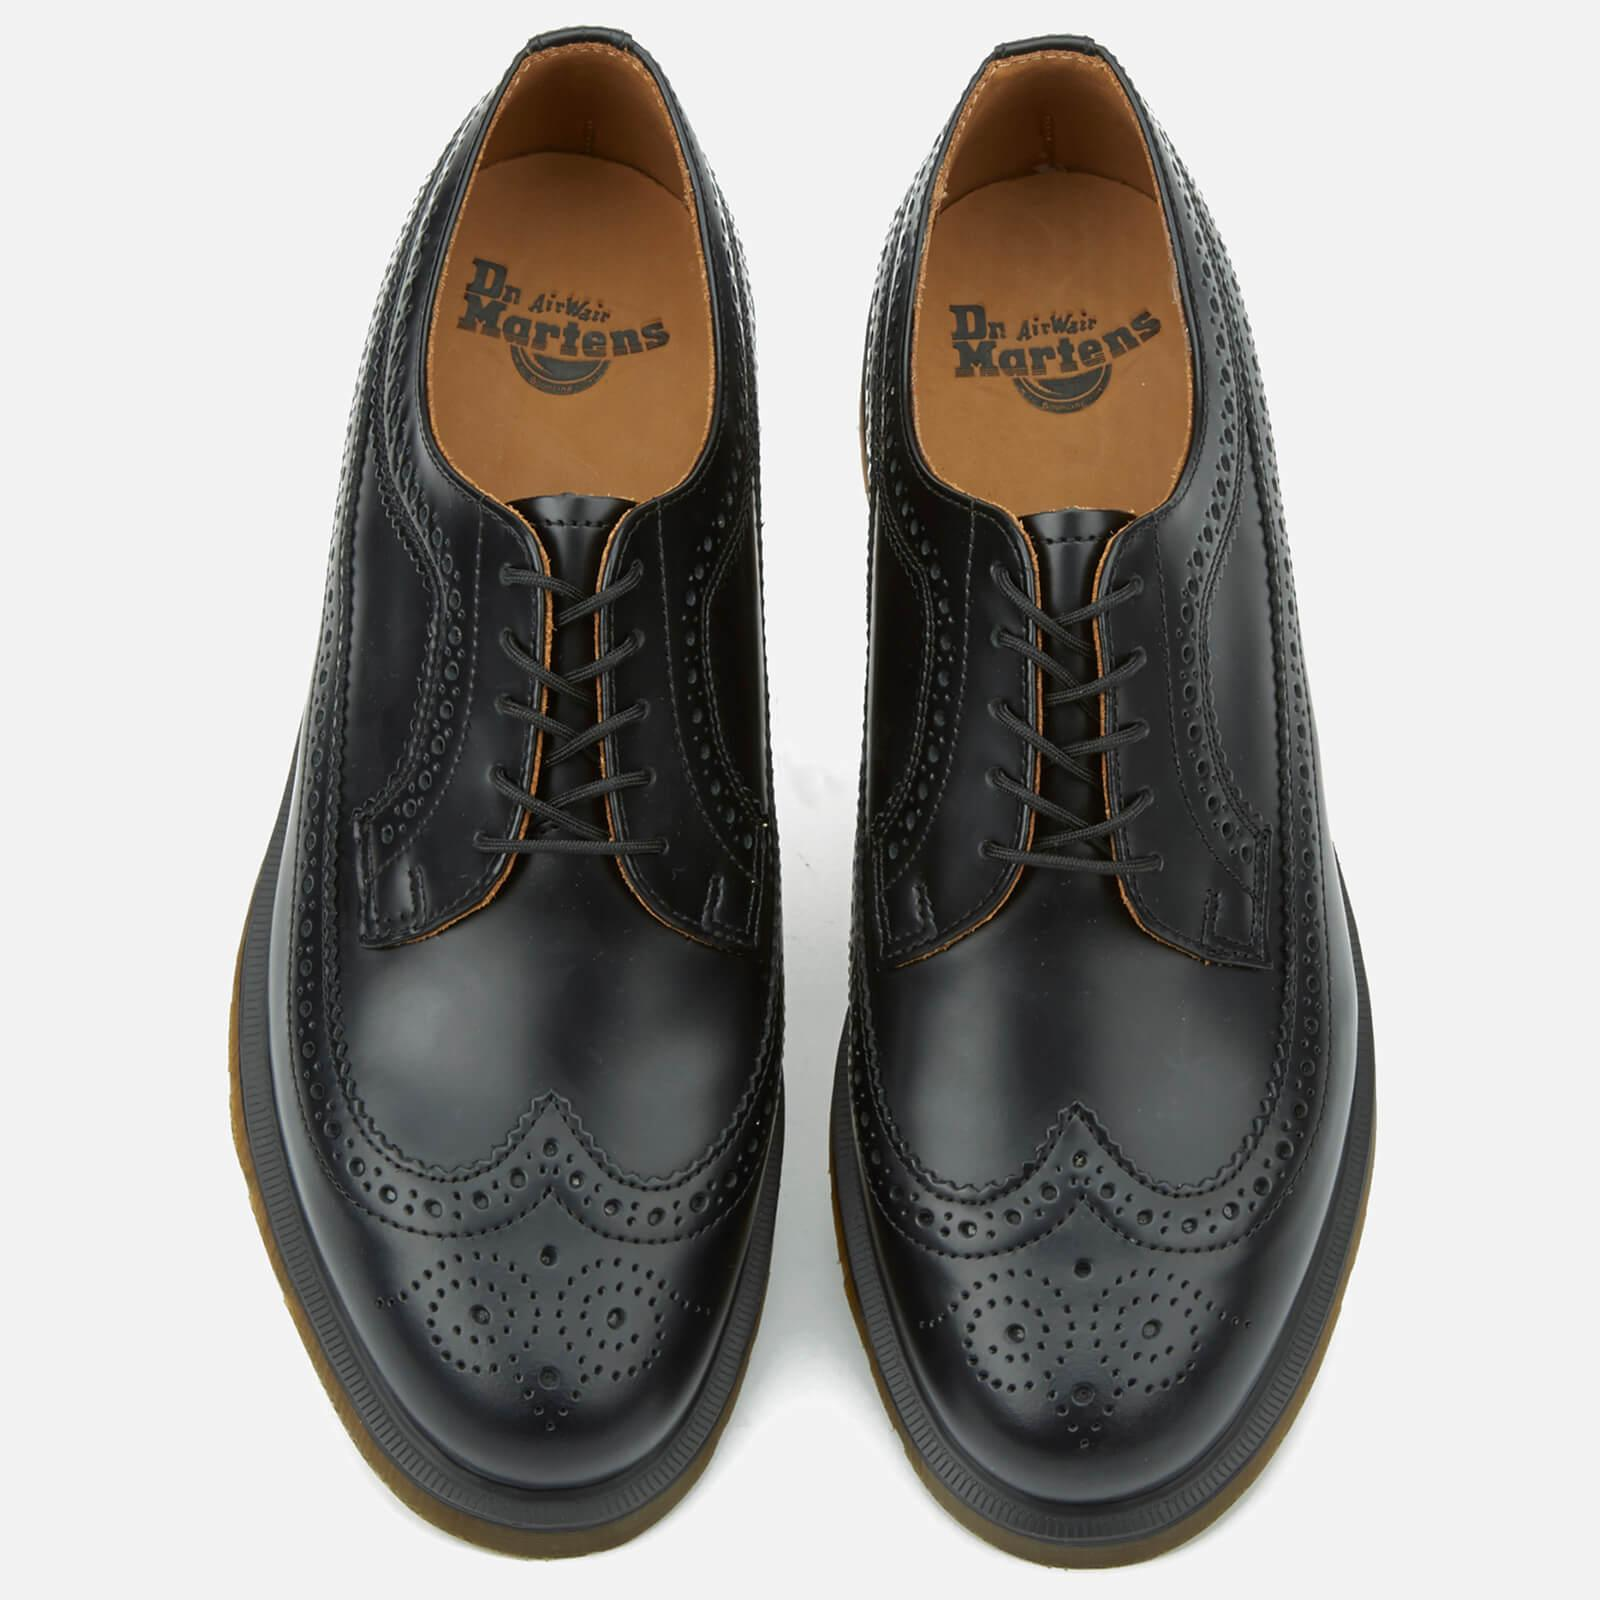 2bb04f9cf2 Dr. Martens 3989 Pw Smooth Leather Wingtip Brogues in Black for Men ...